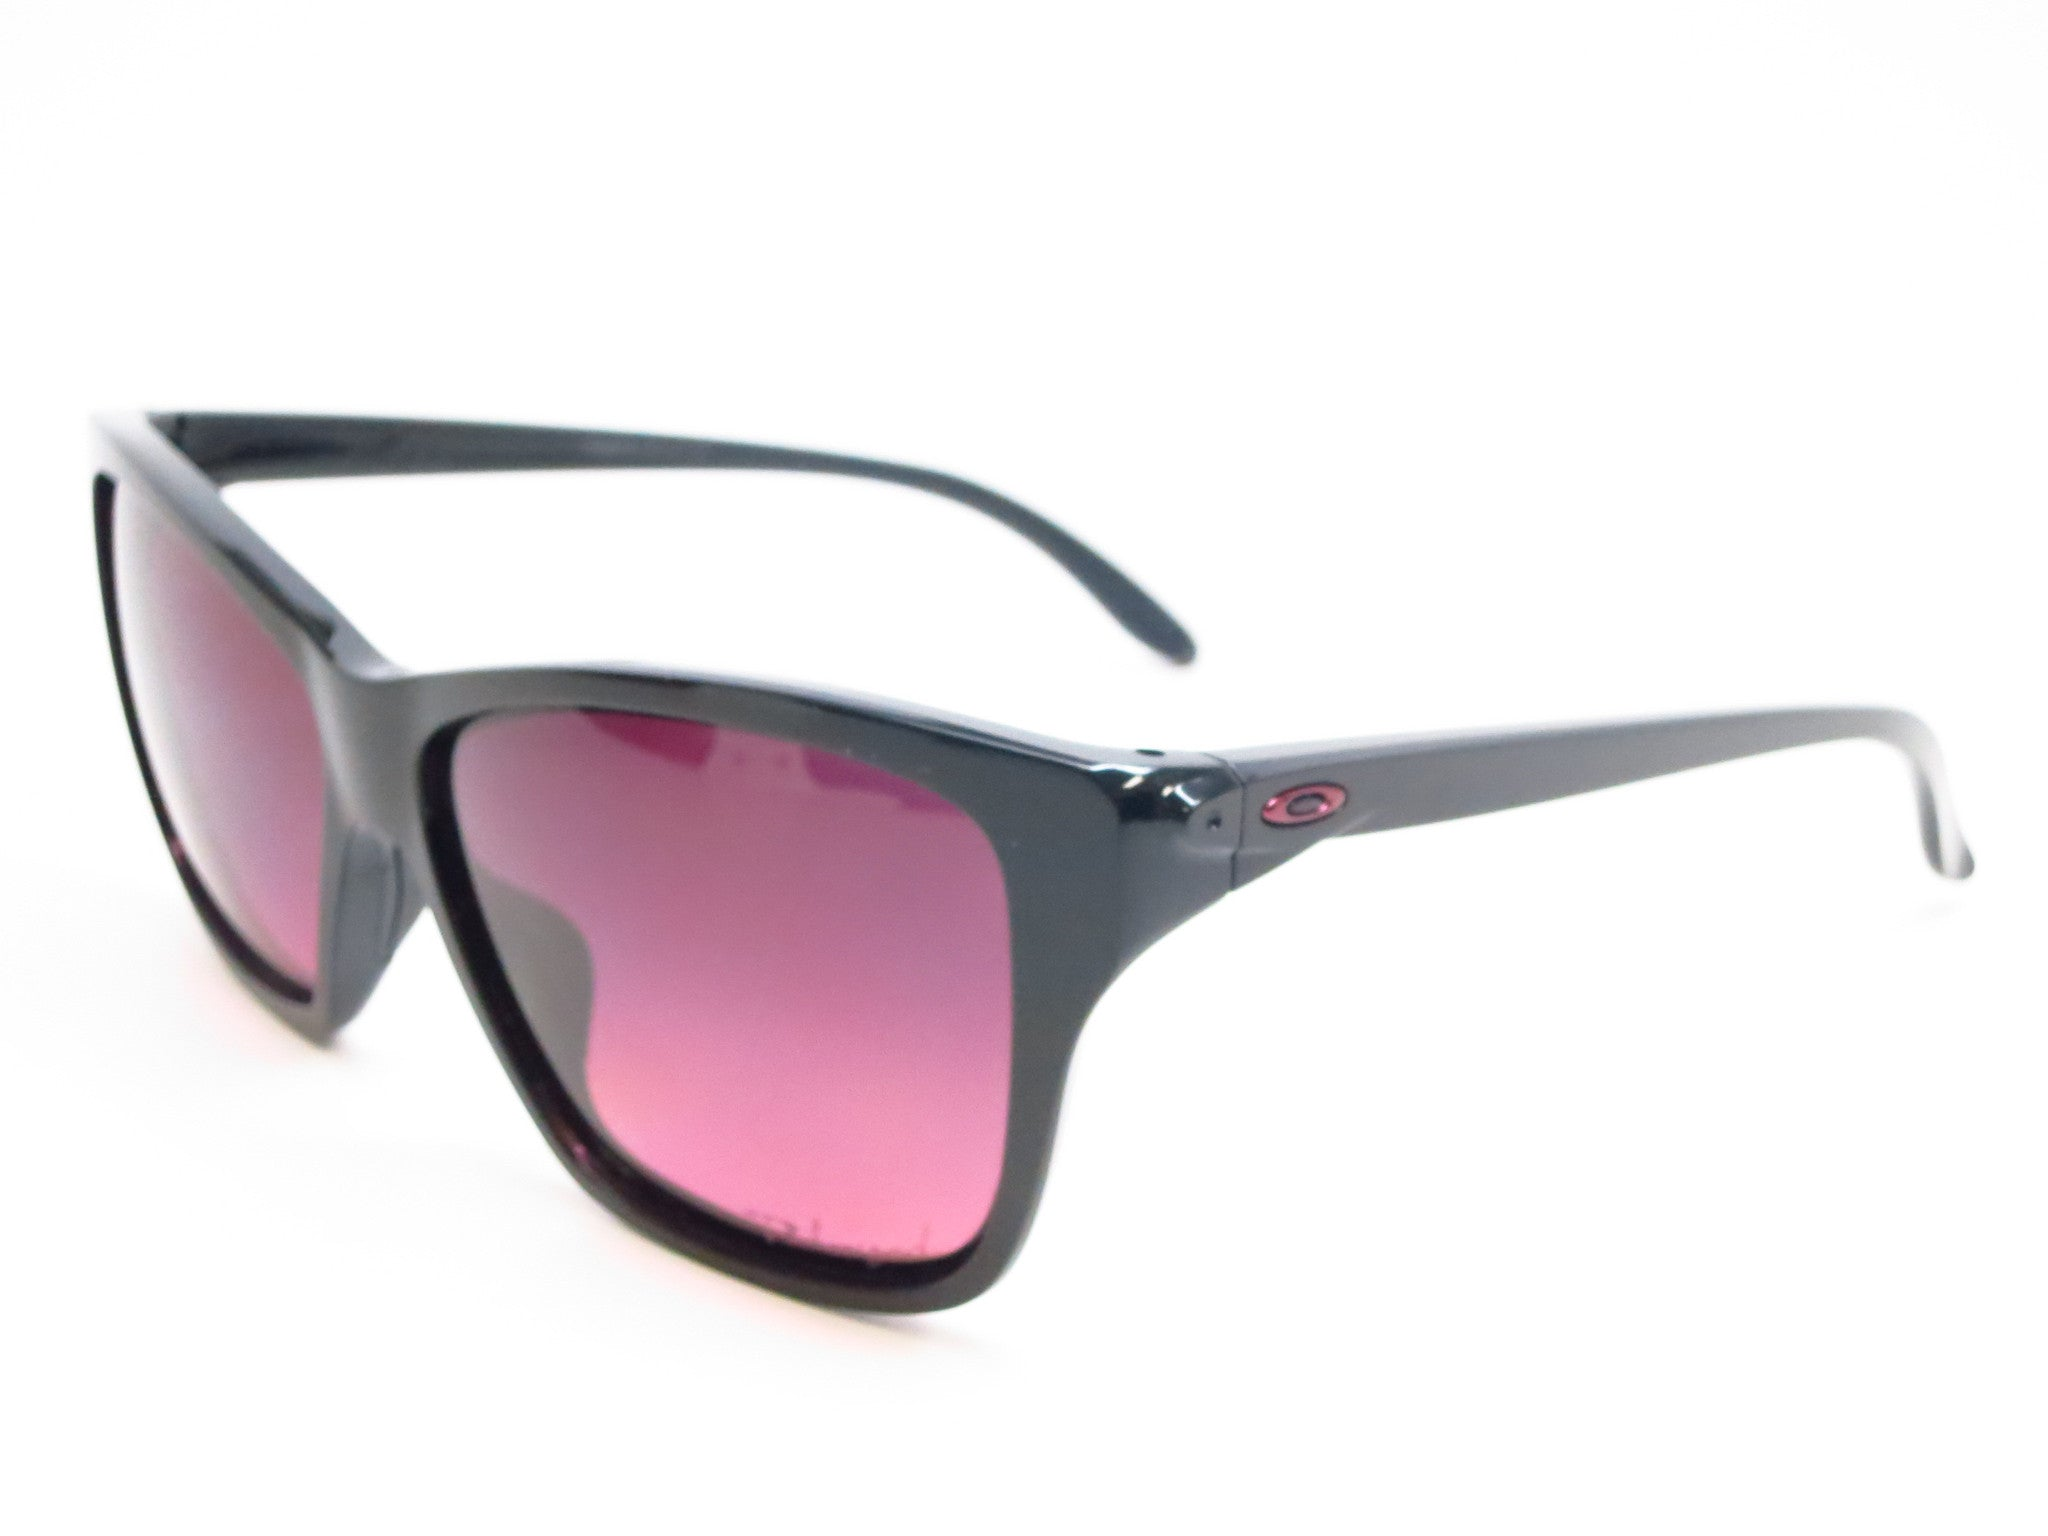 127fd1c9a2 Oakley Hold On OO9298-02 Polished Black Polarized Sunglasses - Eye Heart  Shades - Oakley ...